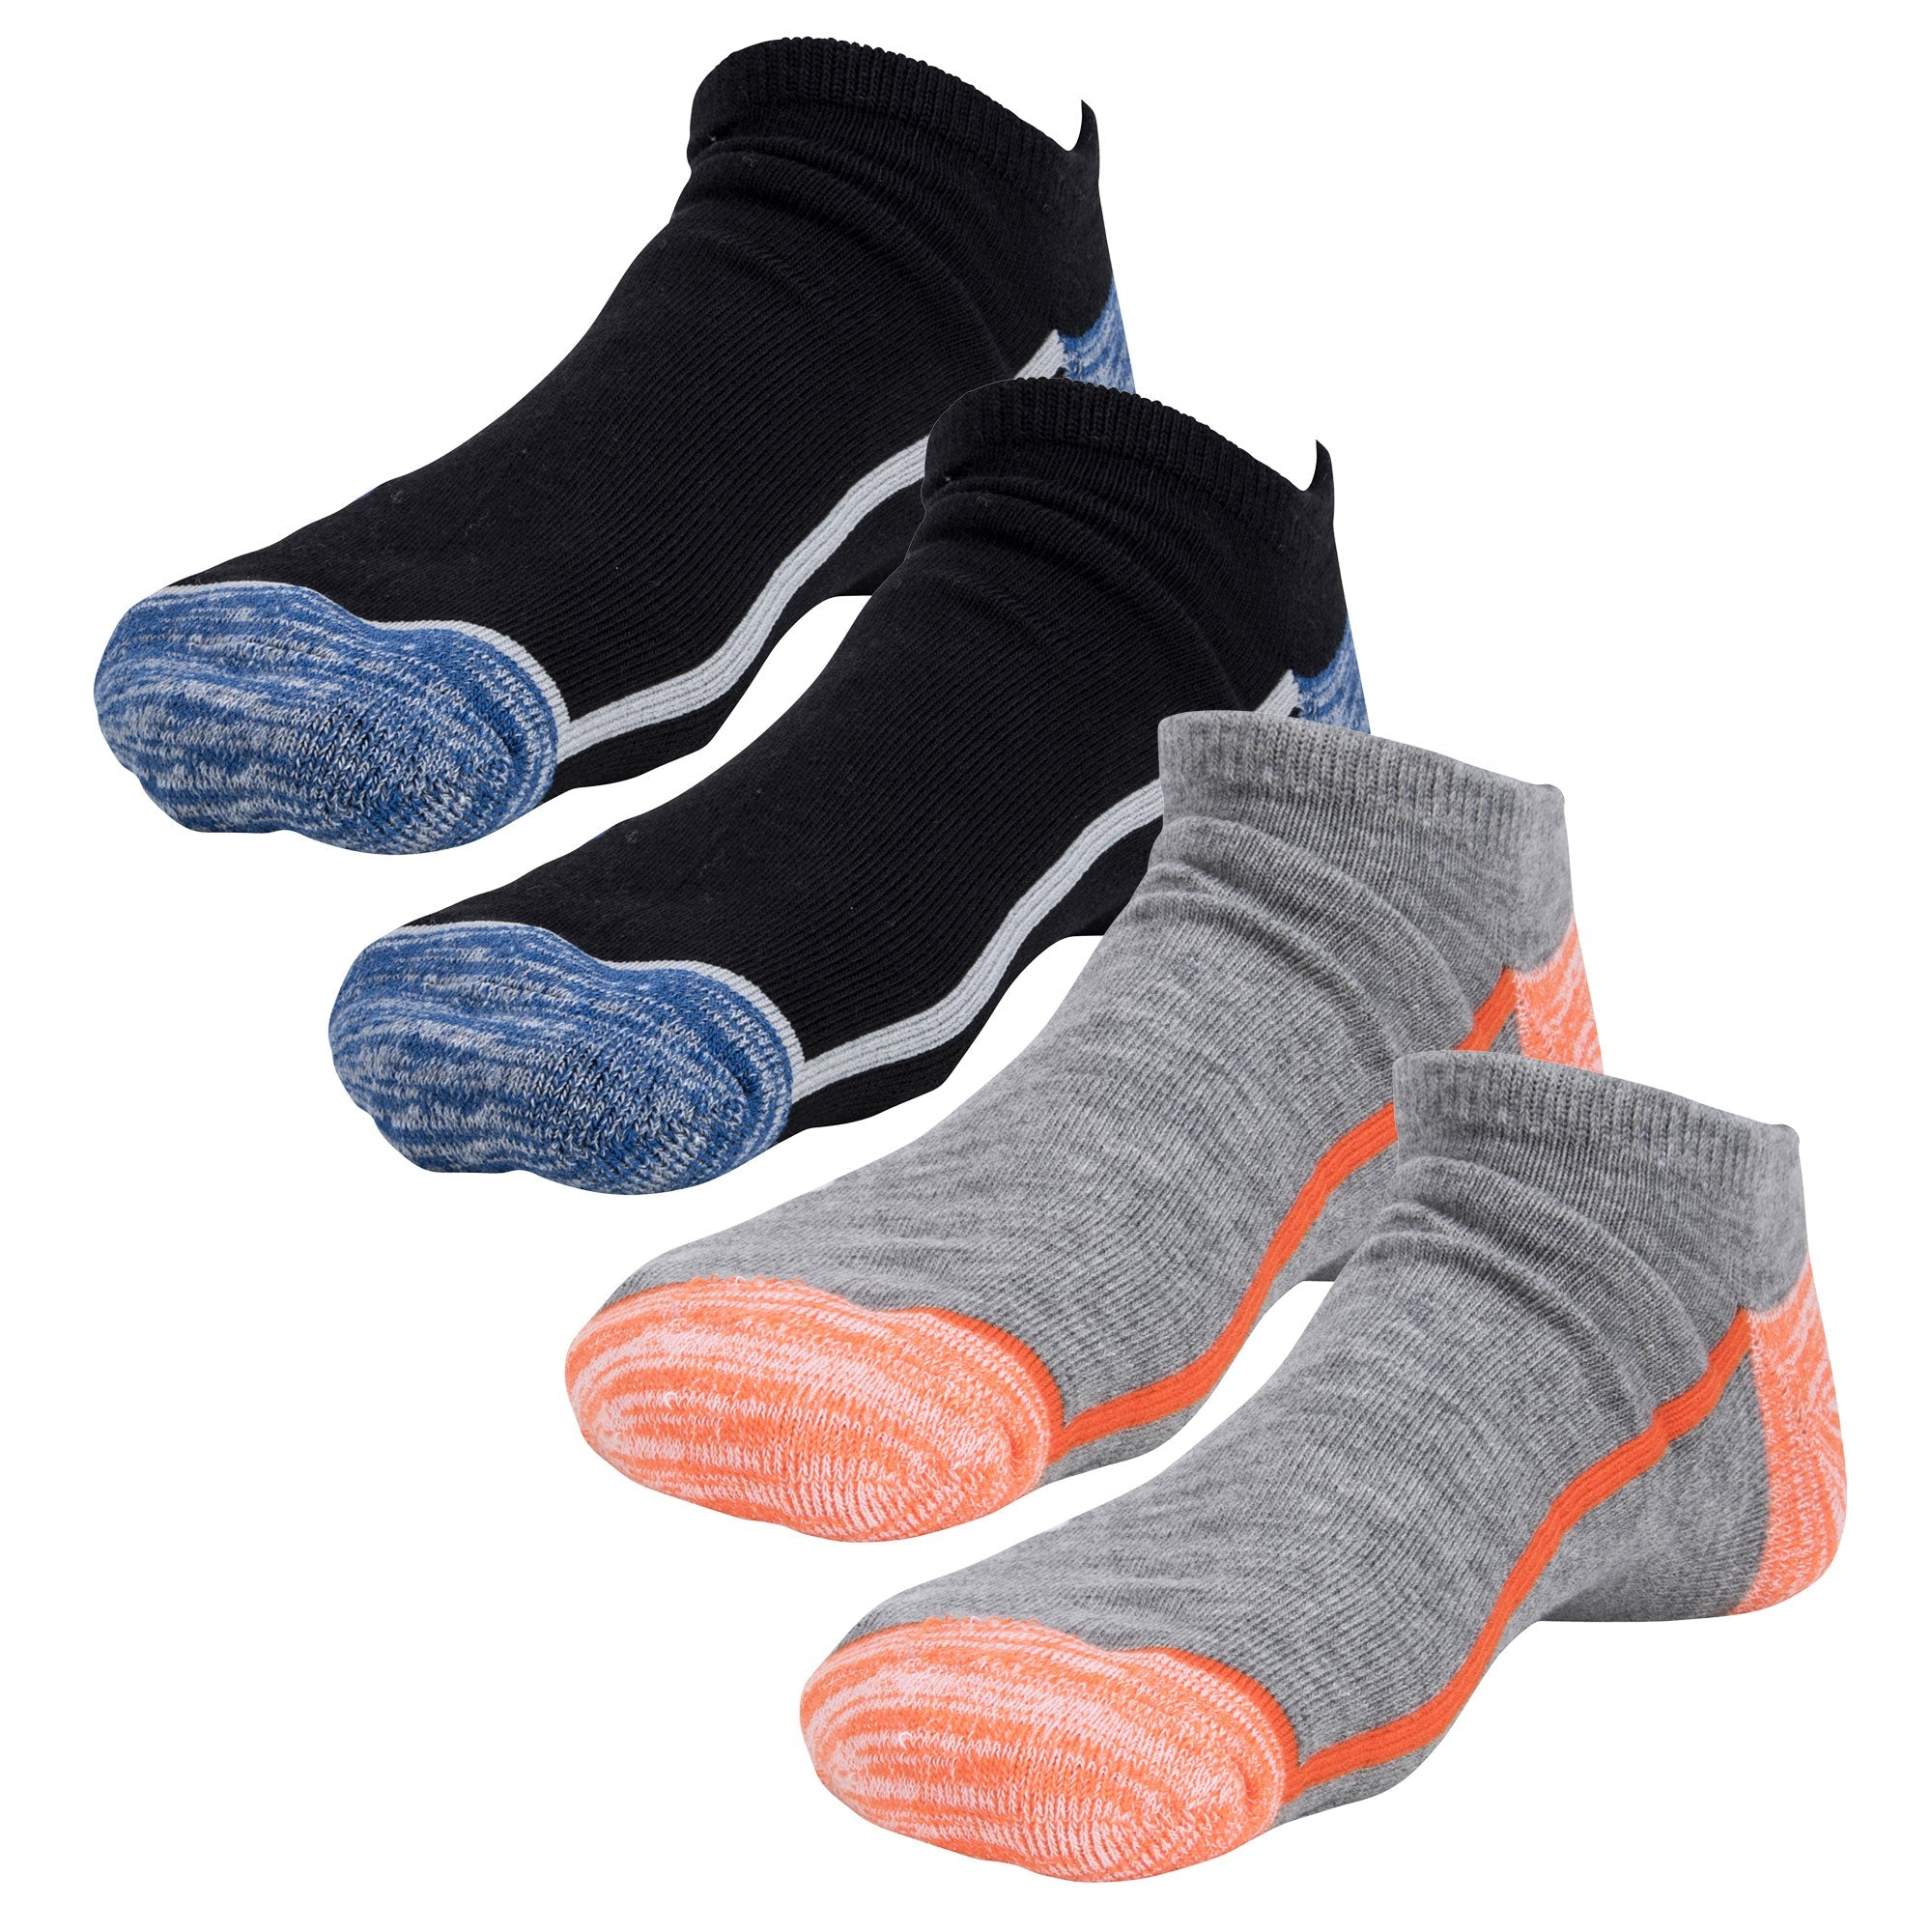 Everlast Men's No Show Socks - 4 Pack by Everlast Canada